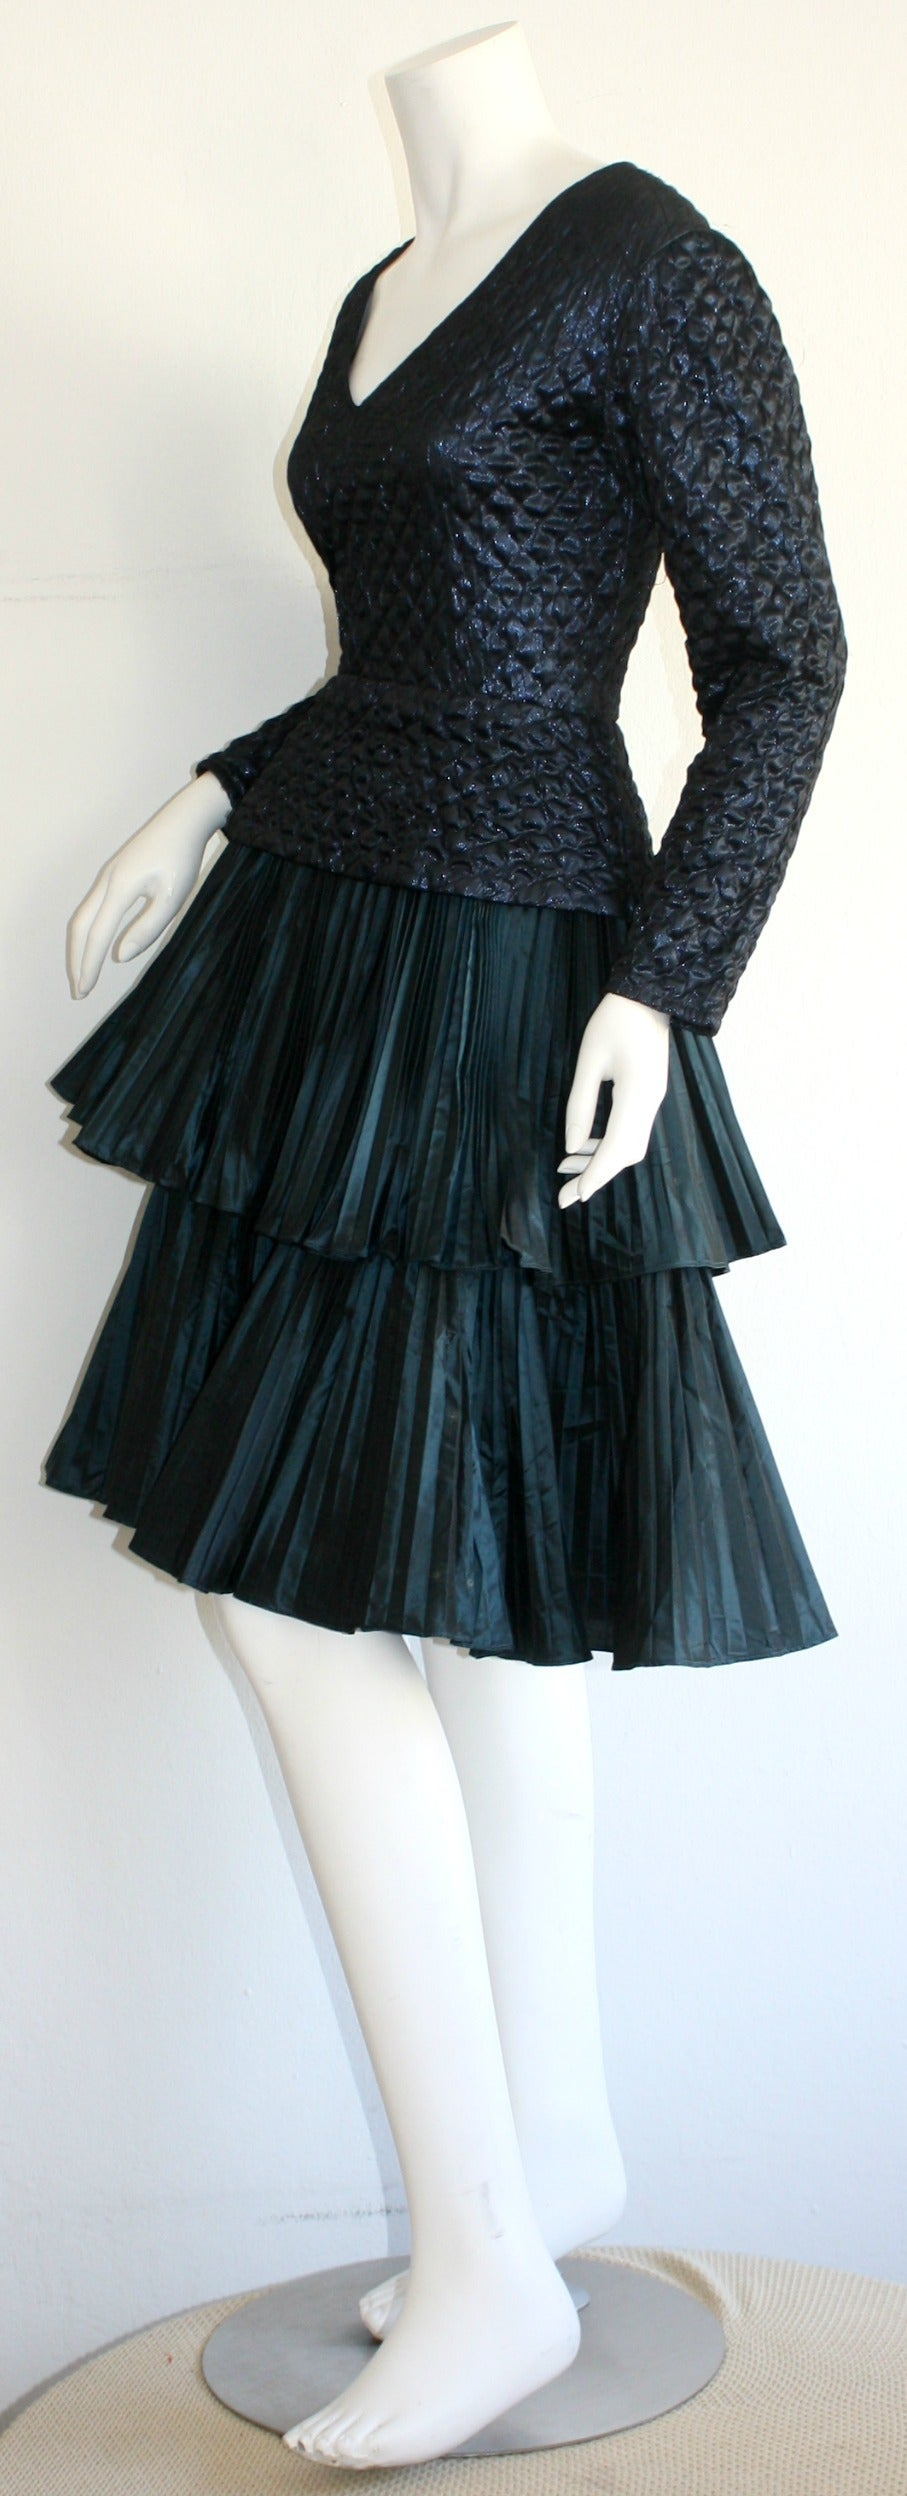 Bernard Perris Beautiful Navy Blue Metallic Quilted Accordion Tiered Dress For Sale 2